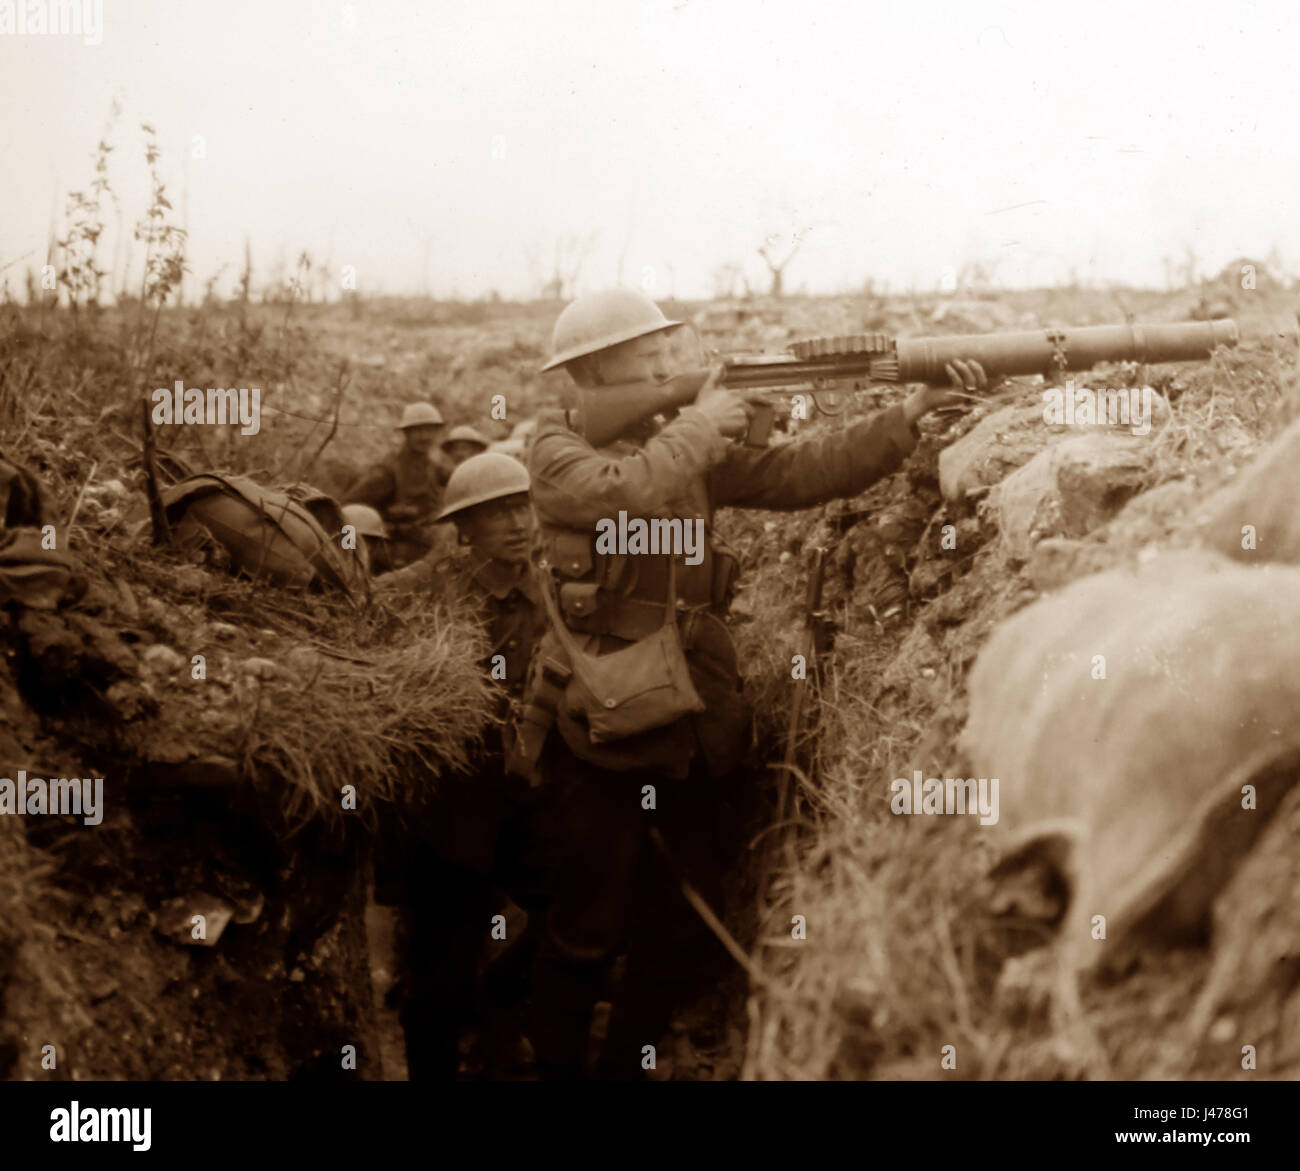 WW1 Battle of the Somme - Lewis gun in action in front line trench near Ovillers, France - July 1916 Stock Photo